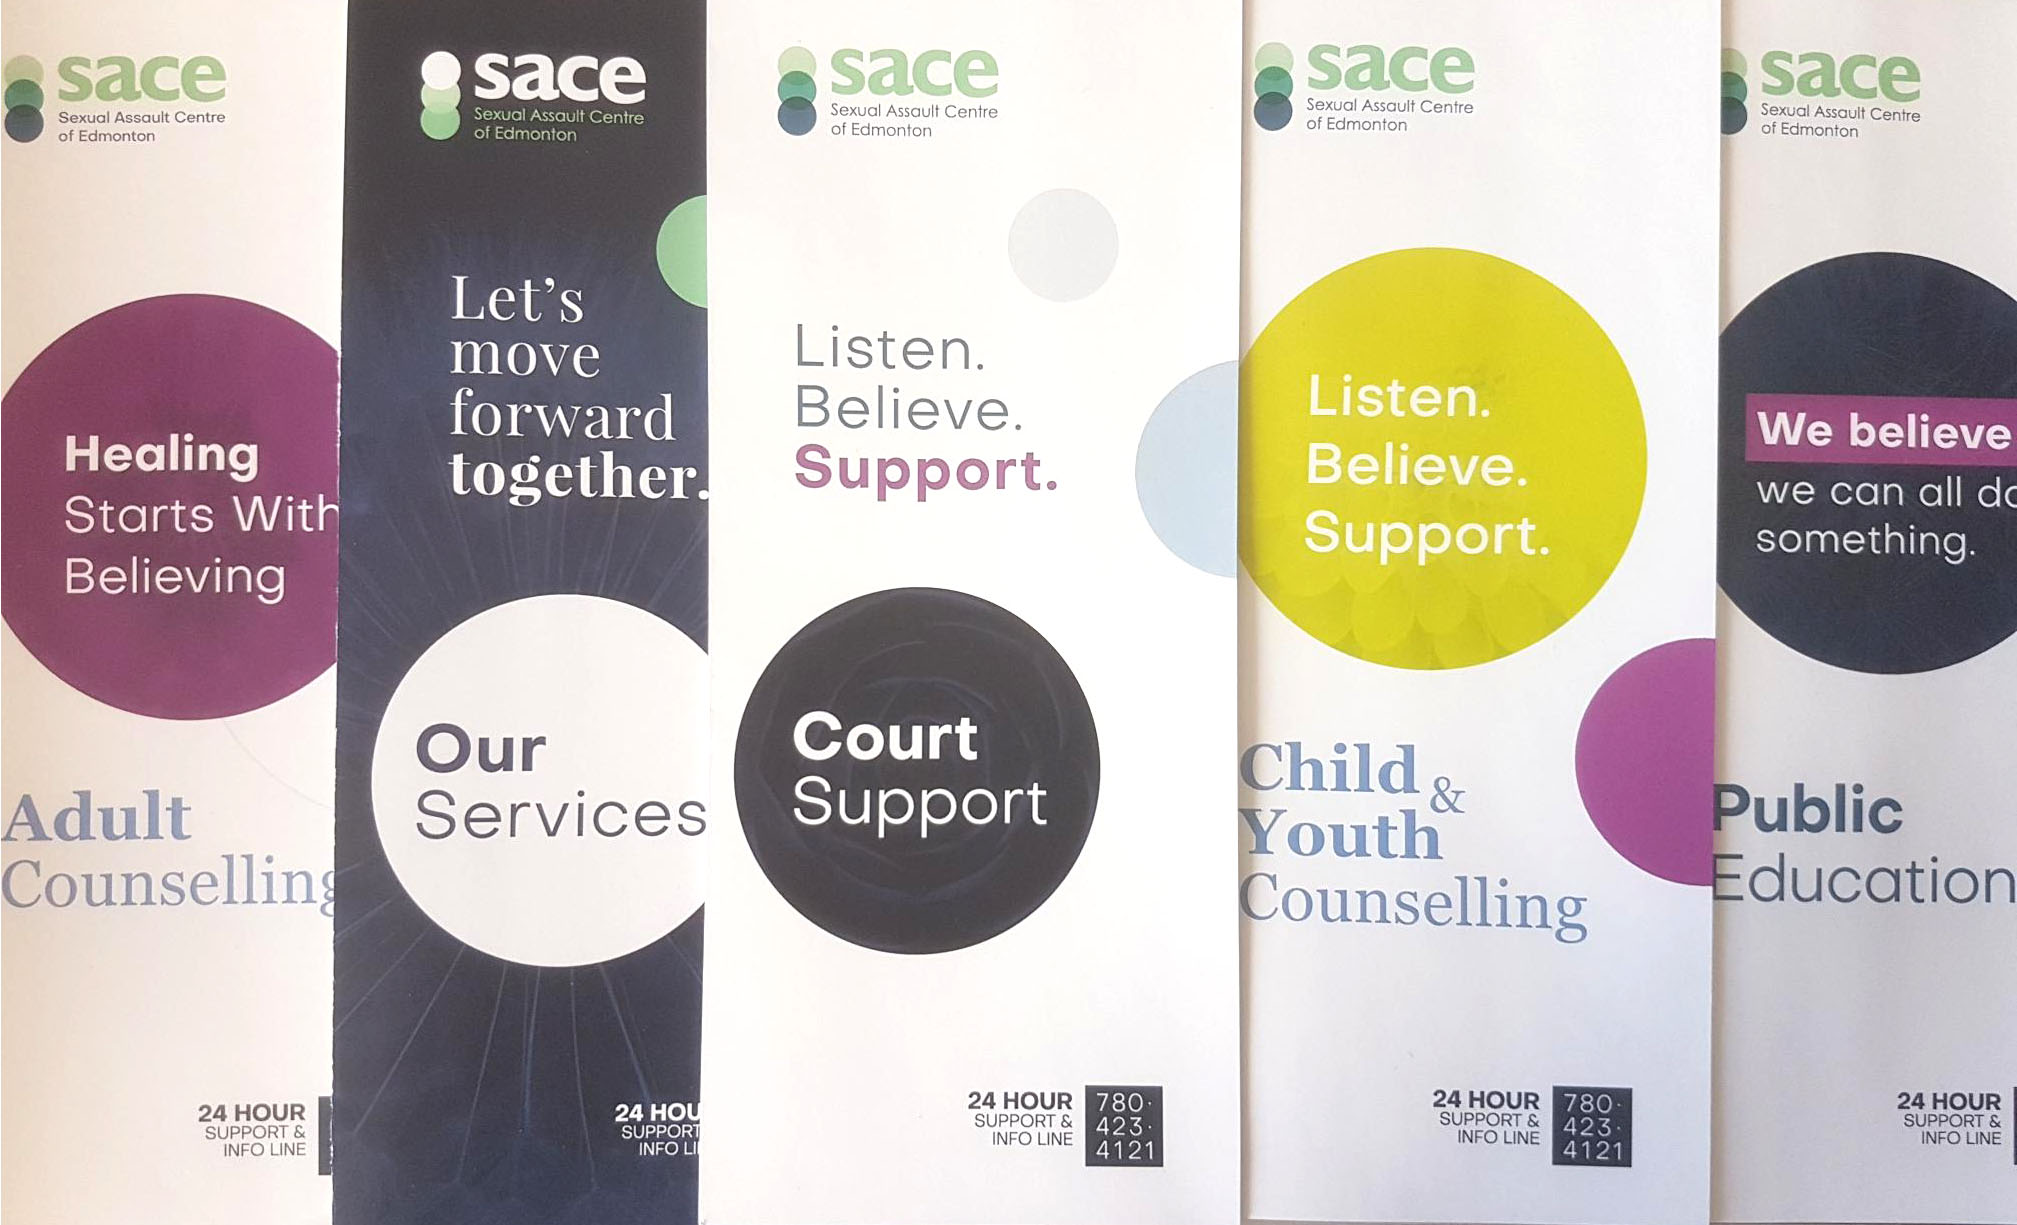 New Expanded Police And Court Support Services At SACE